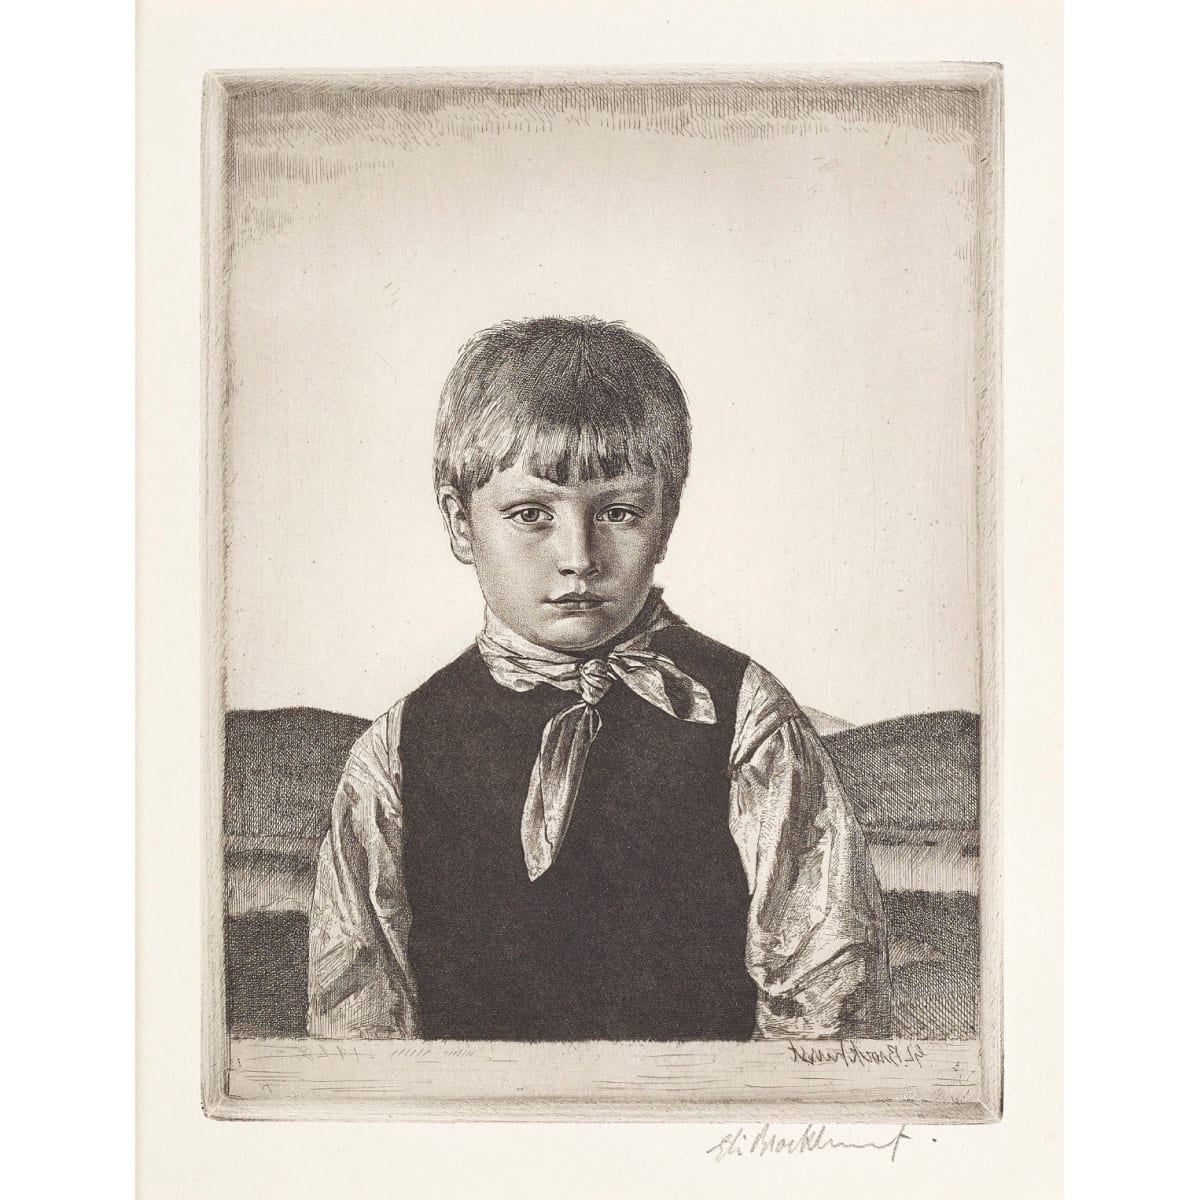 Gerald Leslie Brockhurst Amberley Boy no.2, 1928 signed and dated 1928 in plate; signed in pencil to margin etching plate size: 7 1/2 x 5 3/4 inches from the only published edition of 111 signed proofs in the final state (137 impressions in all)